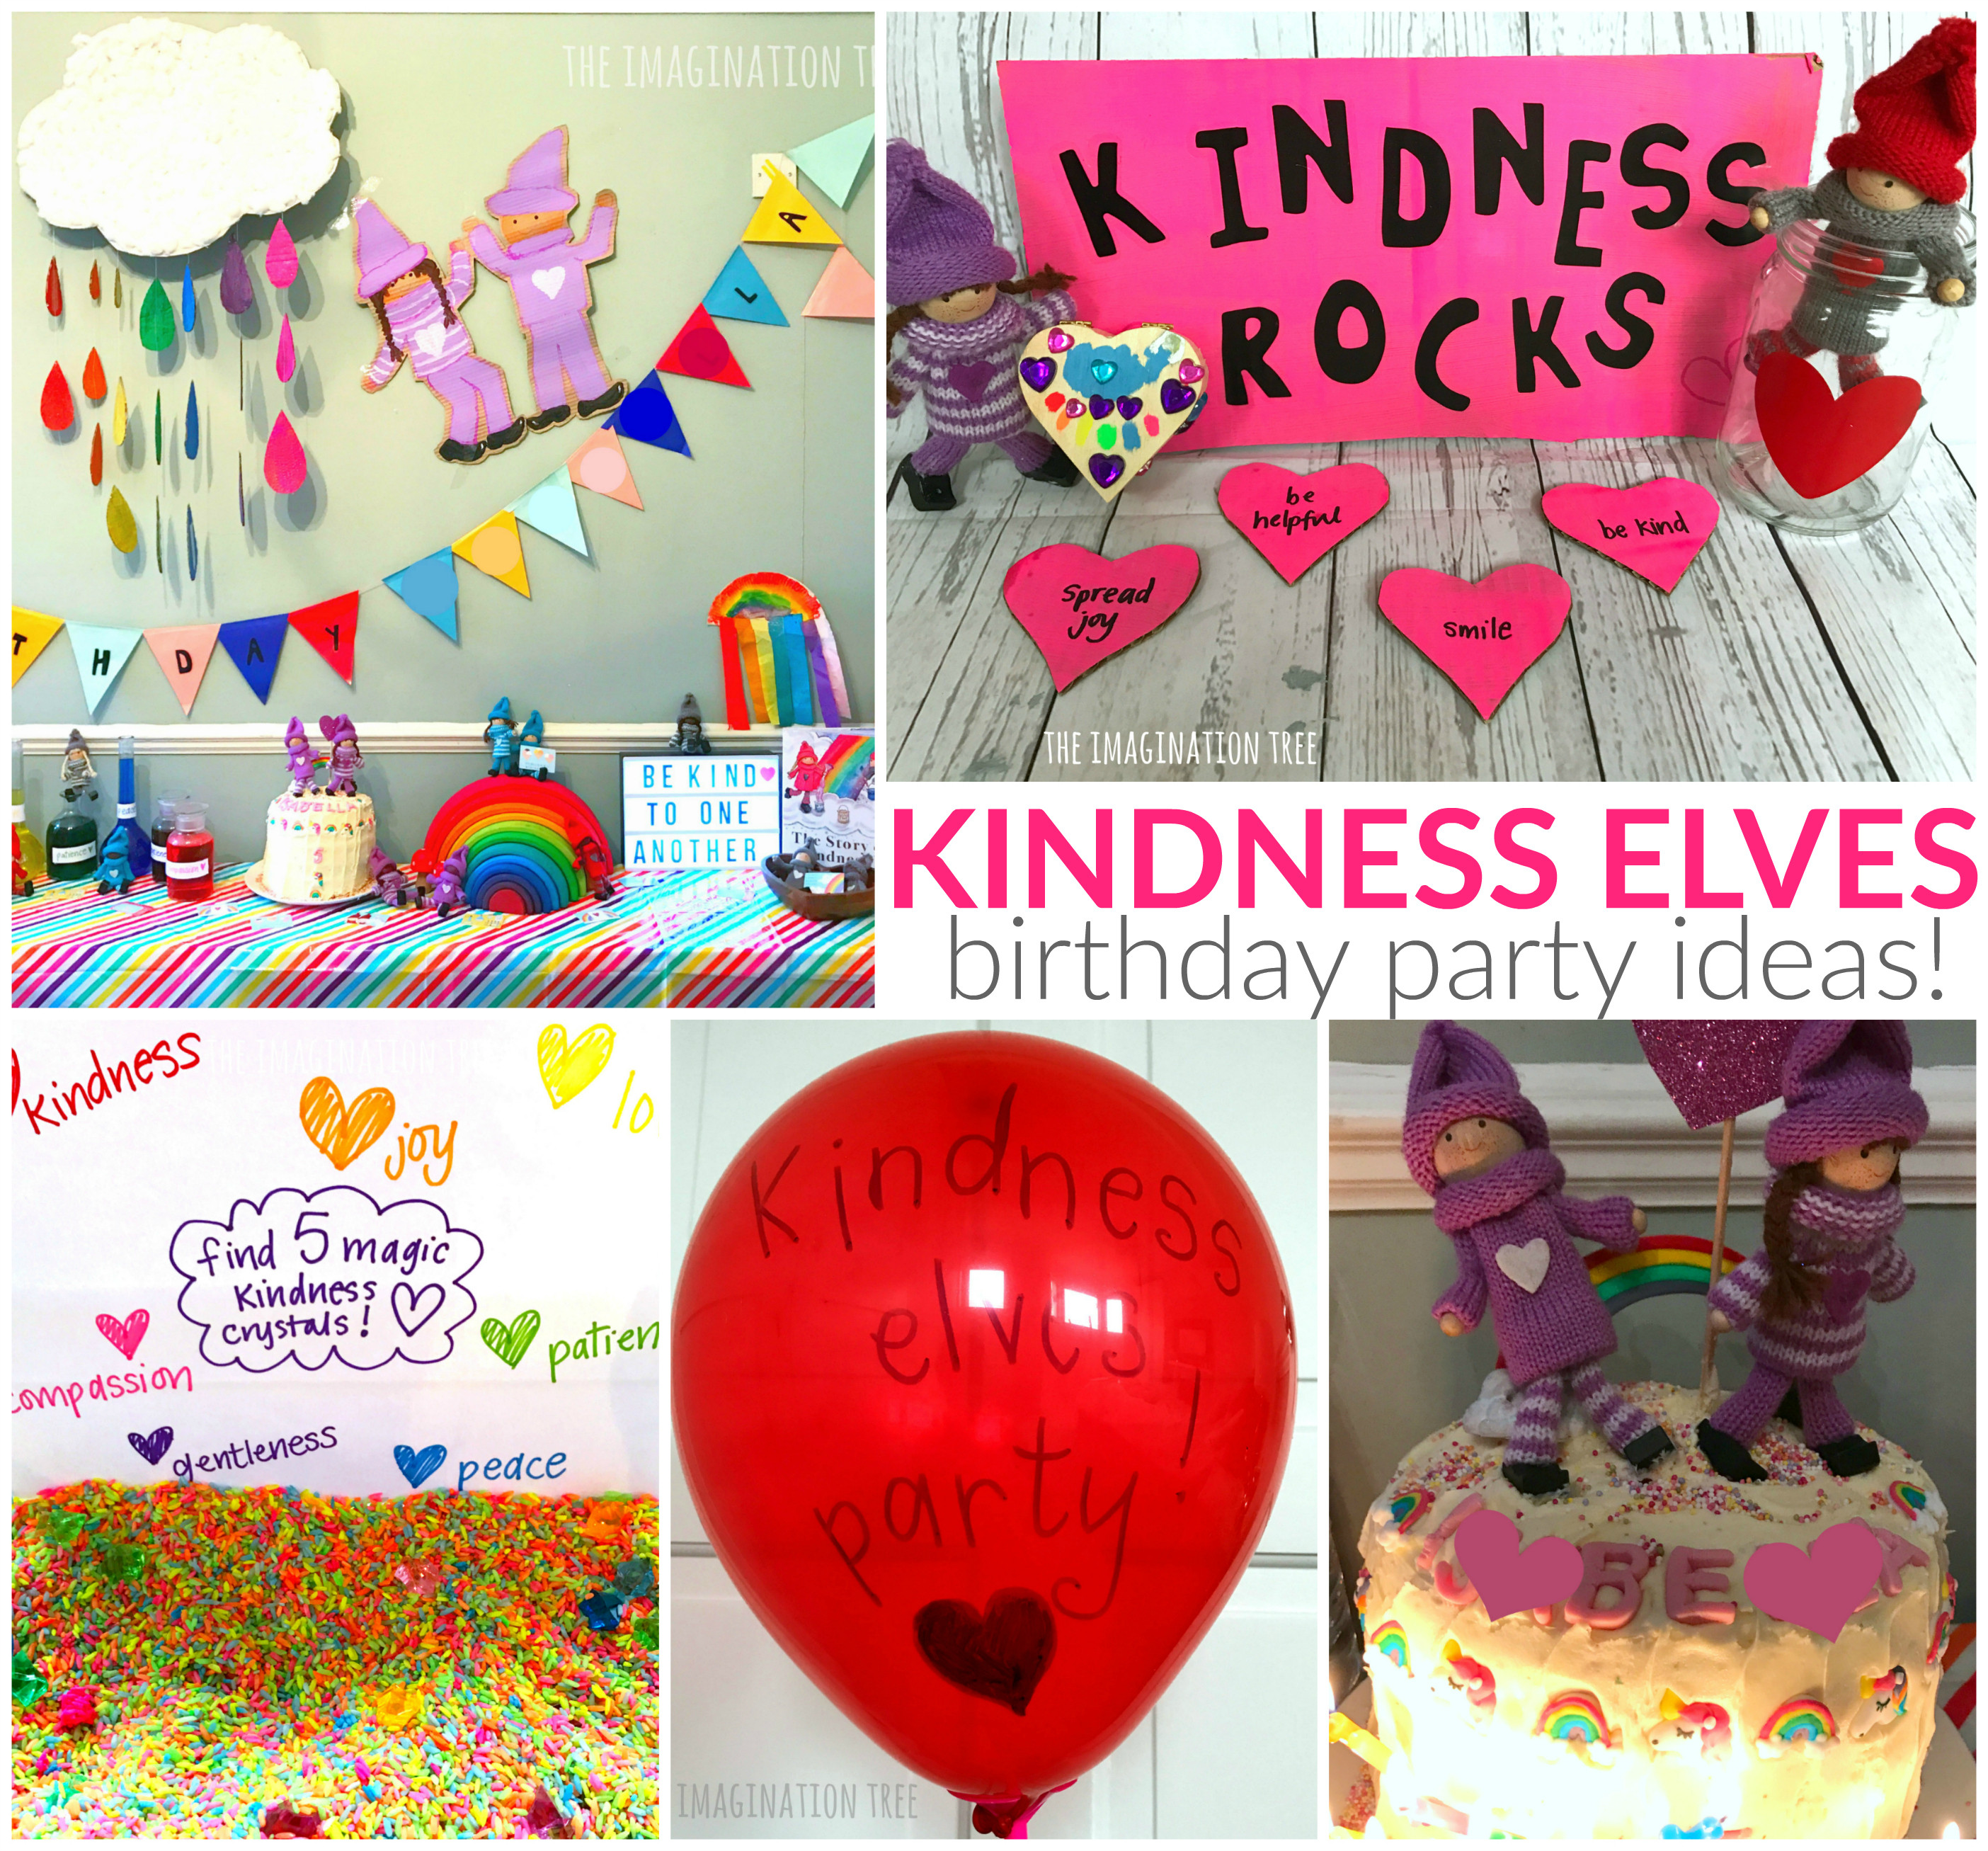 Best ideas about Idea For Kids Birthday Party . Save or Pin Kindness Elves Birthday Party Ideas The Imagination Tree Now.